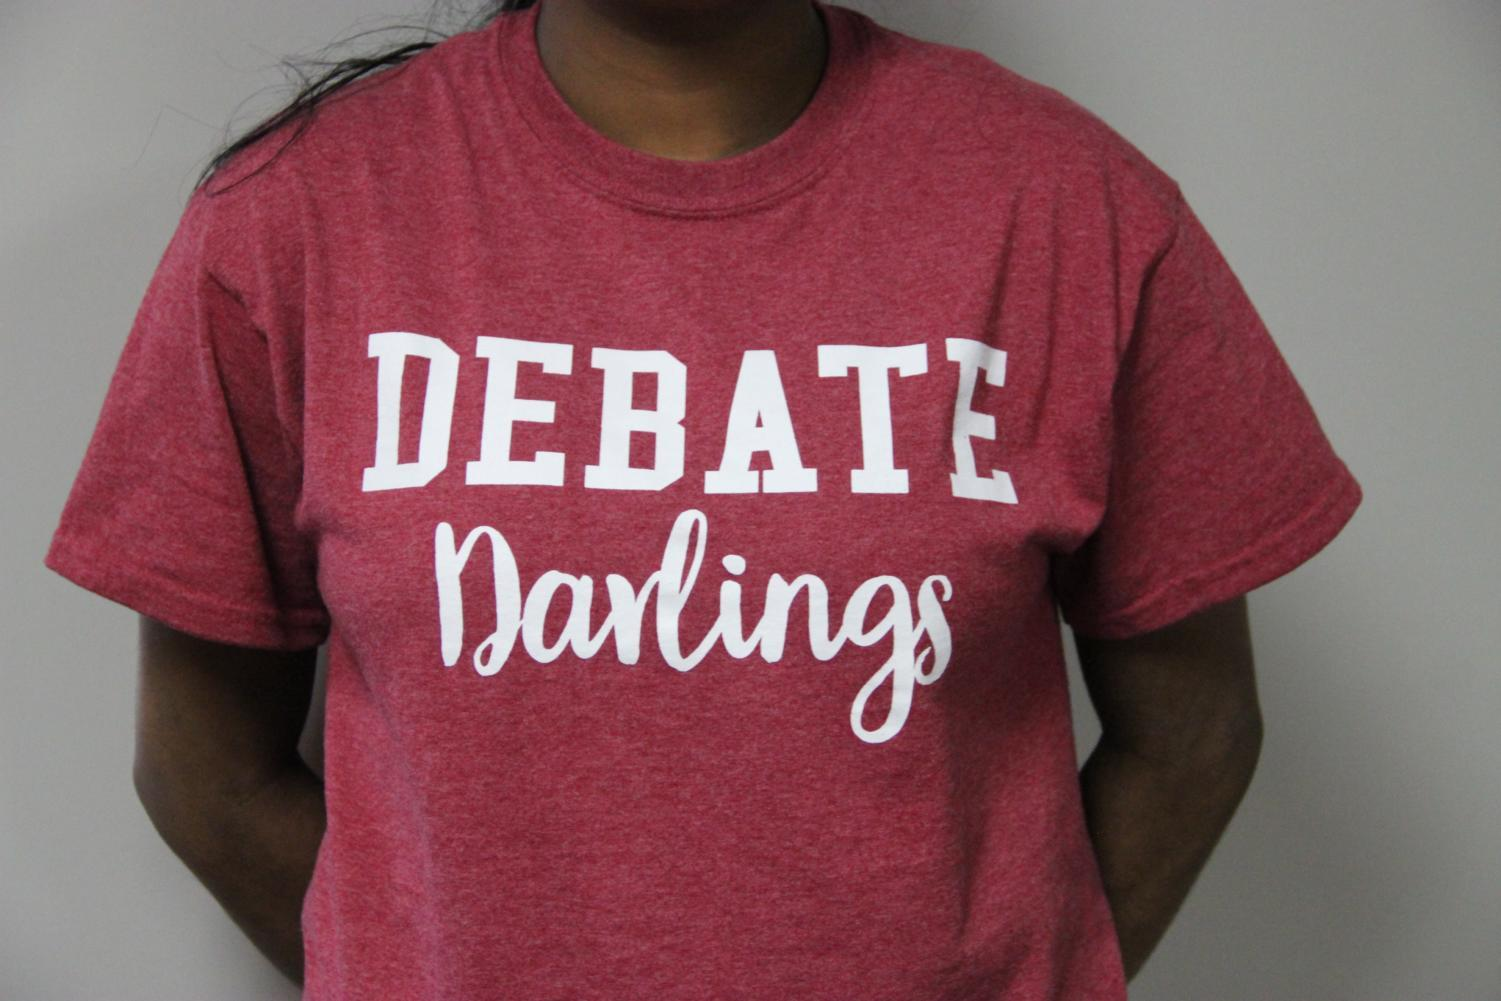 Coppell High School students wear different supporter shirts such as Debate Darlings, Swimming Sweetie, Broadway Babe and Respira Royalty. These supporter shirts raise money  for different organizations and are a CHS tradition that students enjoy wearing.